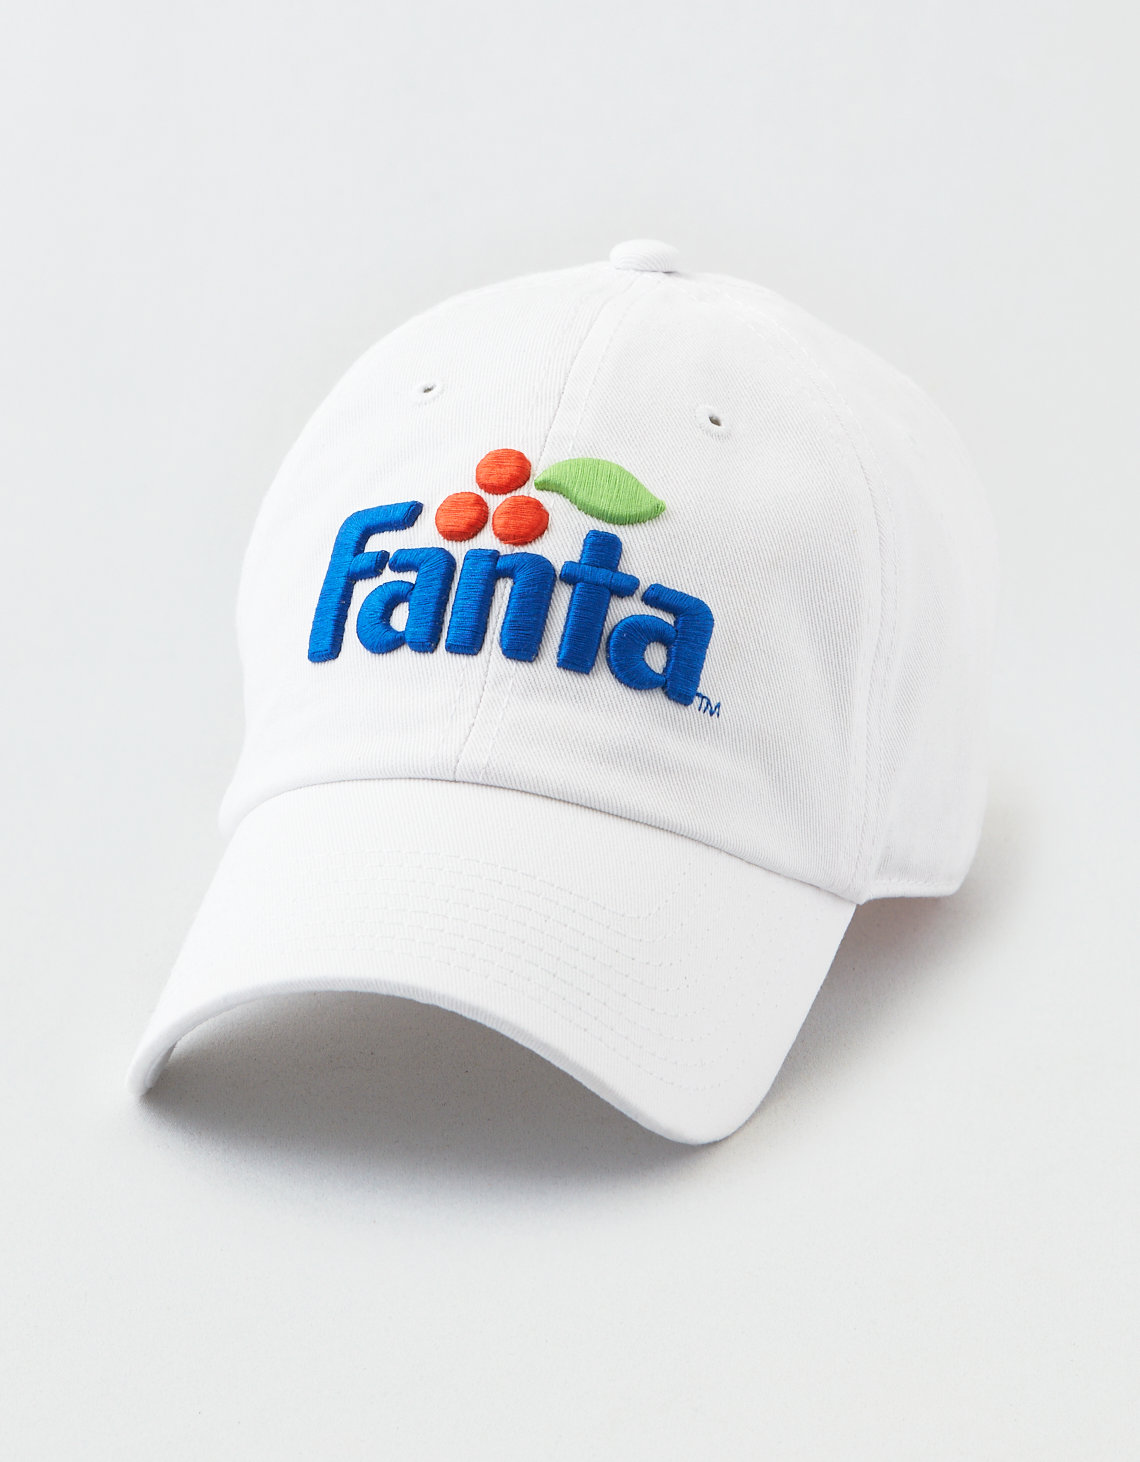 a607814a11f American Needle Fanta Baseball Hat. Placeholder image. Product Image